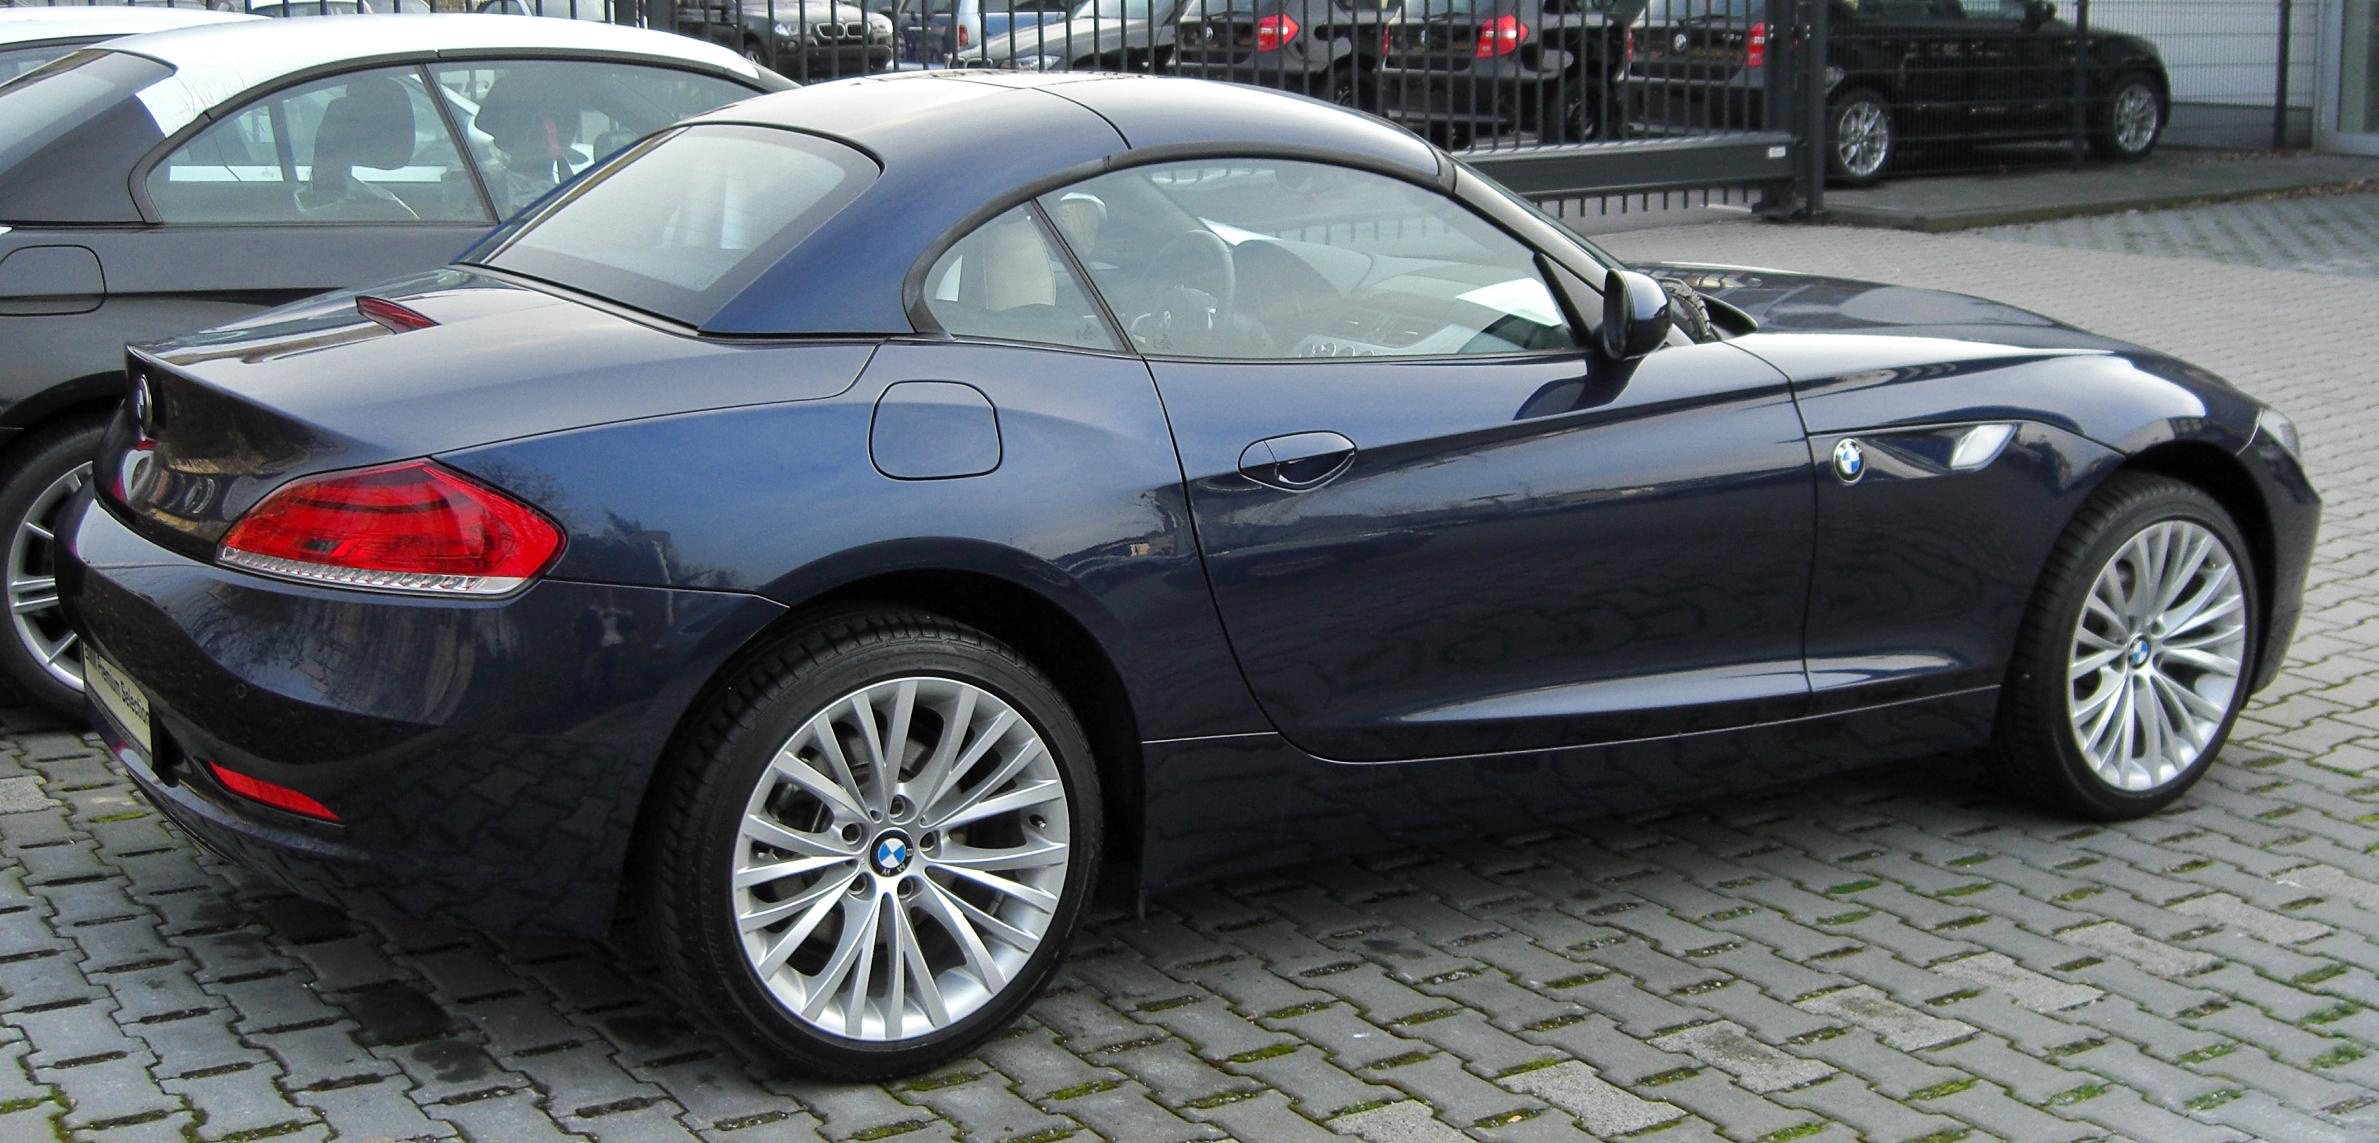 File Bmw Z4 Ii Rear 20100329 Jpg Wikimedia Commons